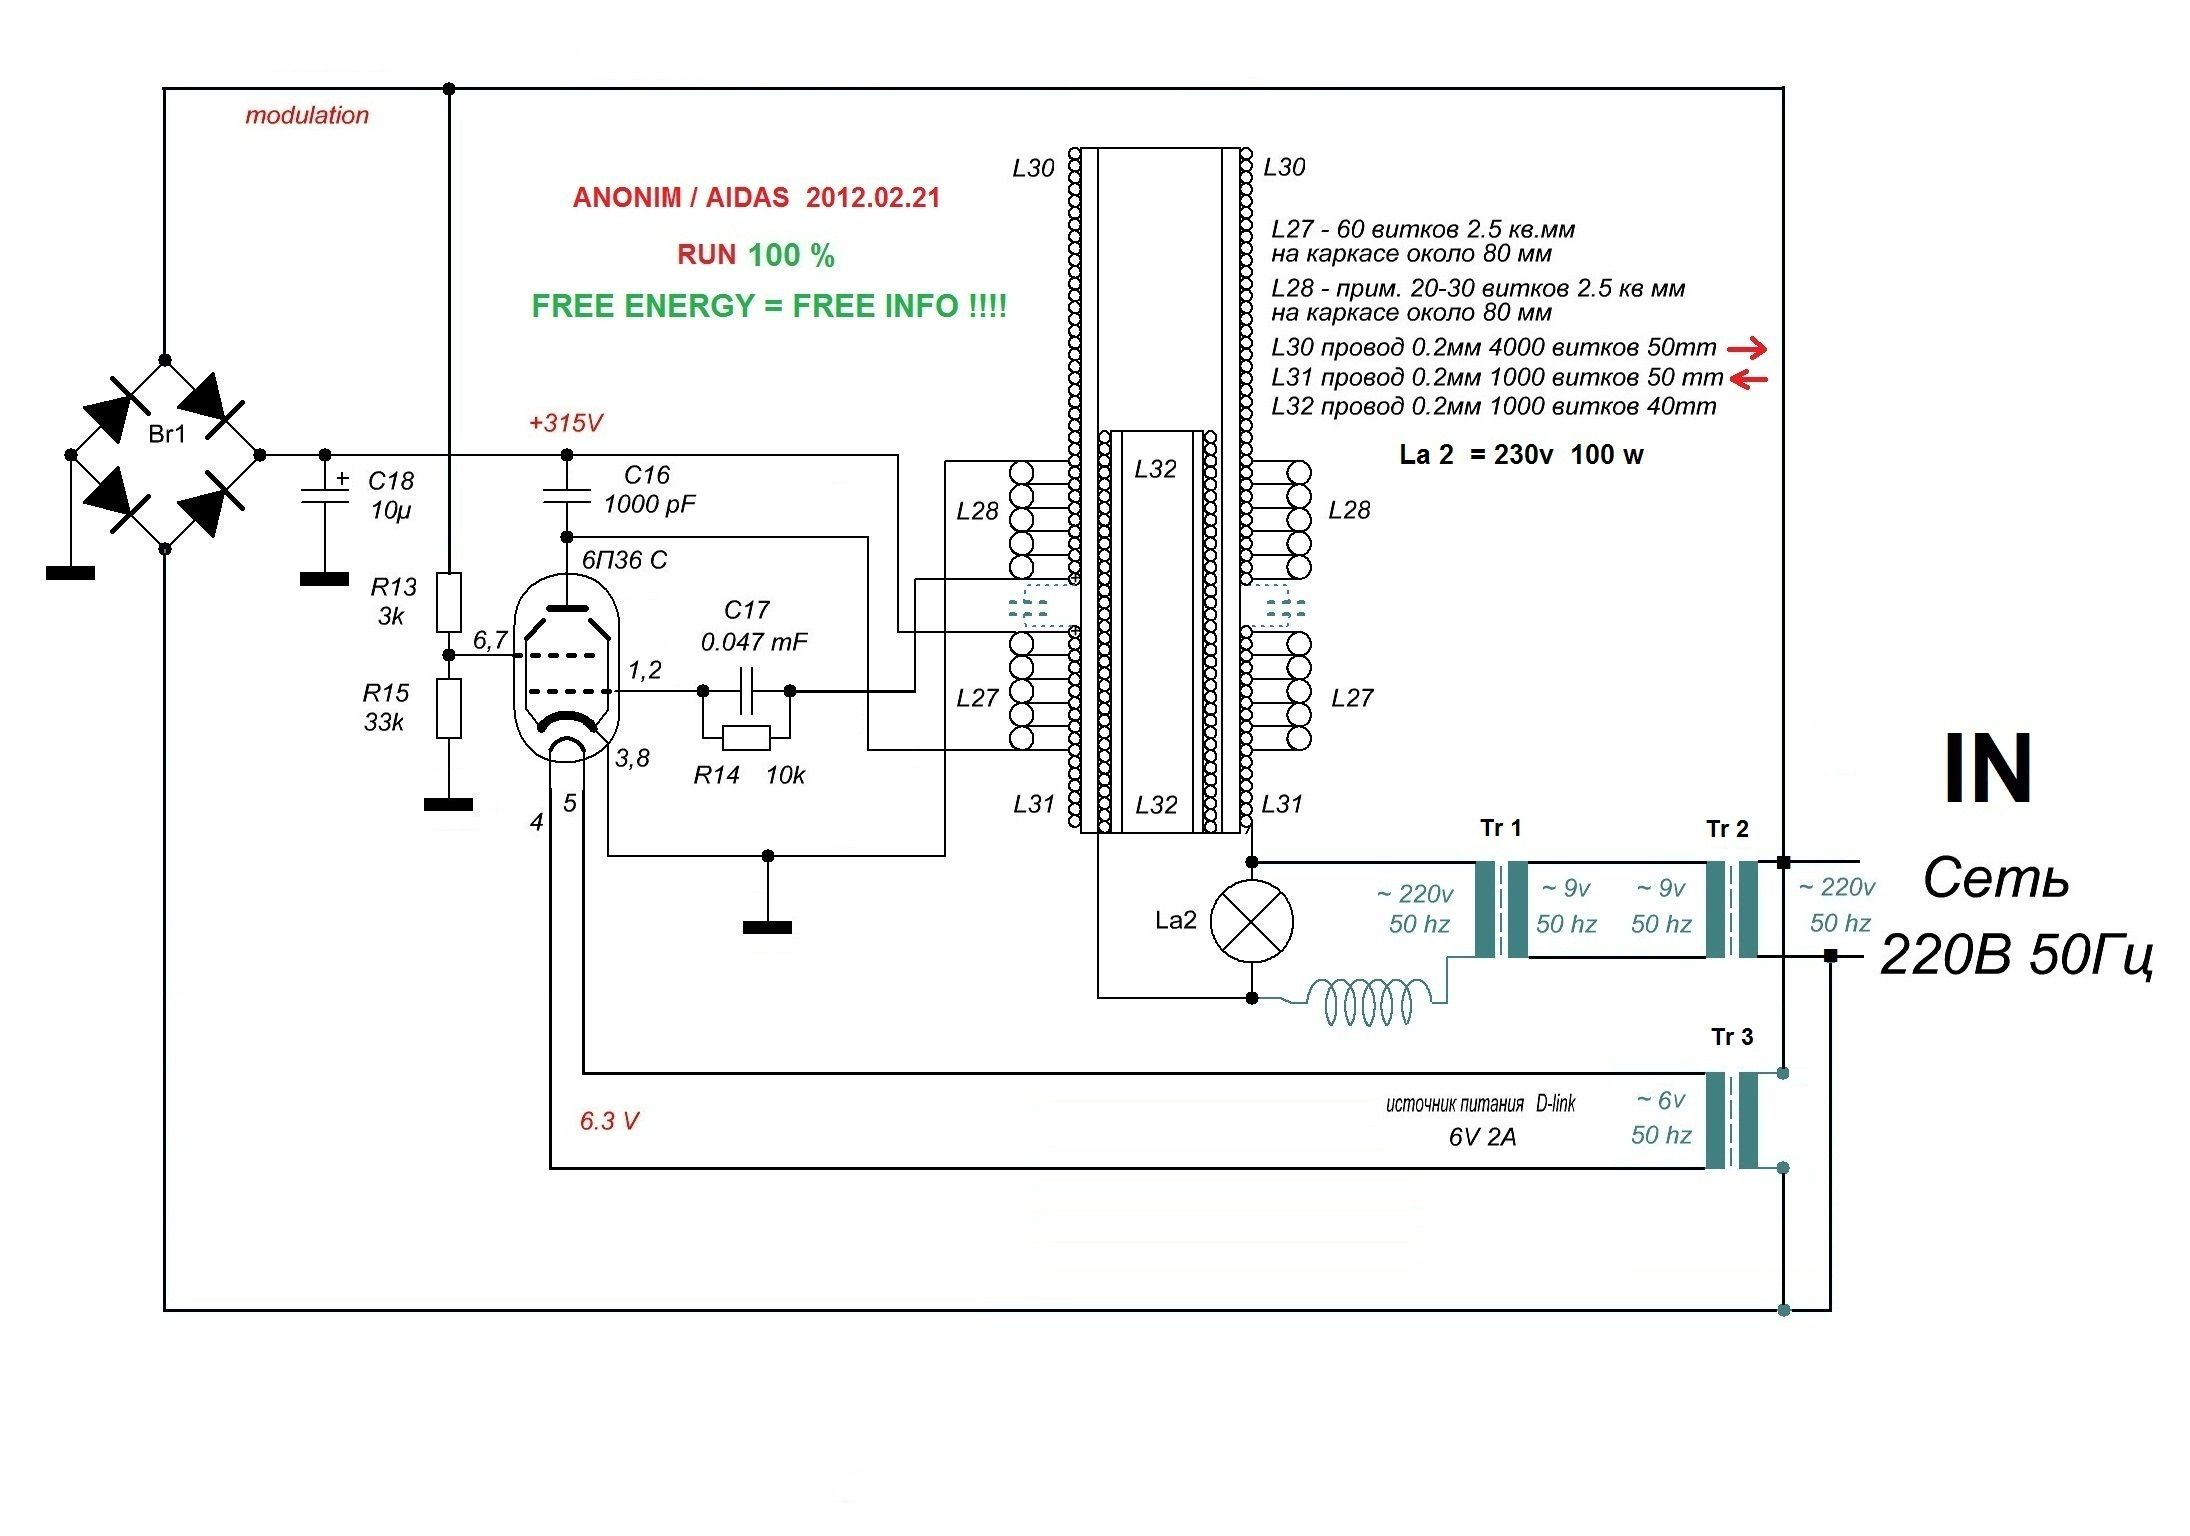 re selfrunning free energy devices up to 5 kw from tariel circuit breaker circuit diagram